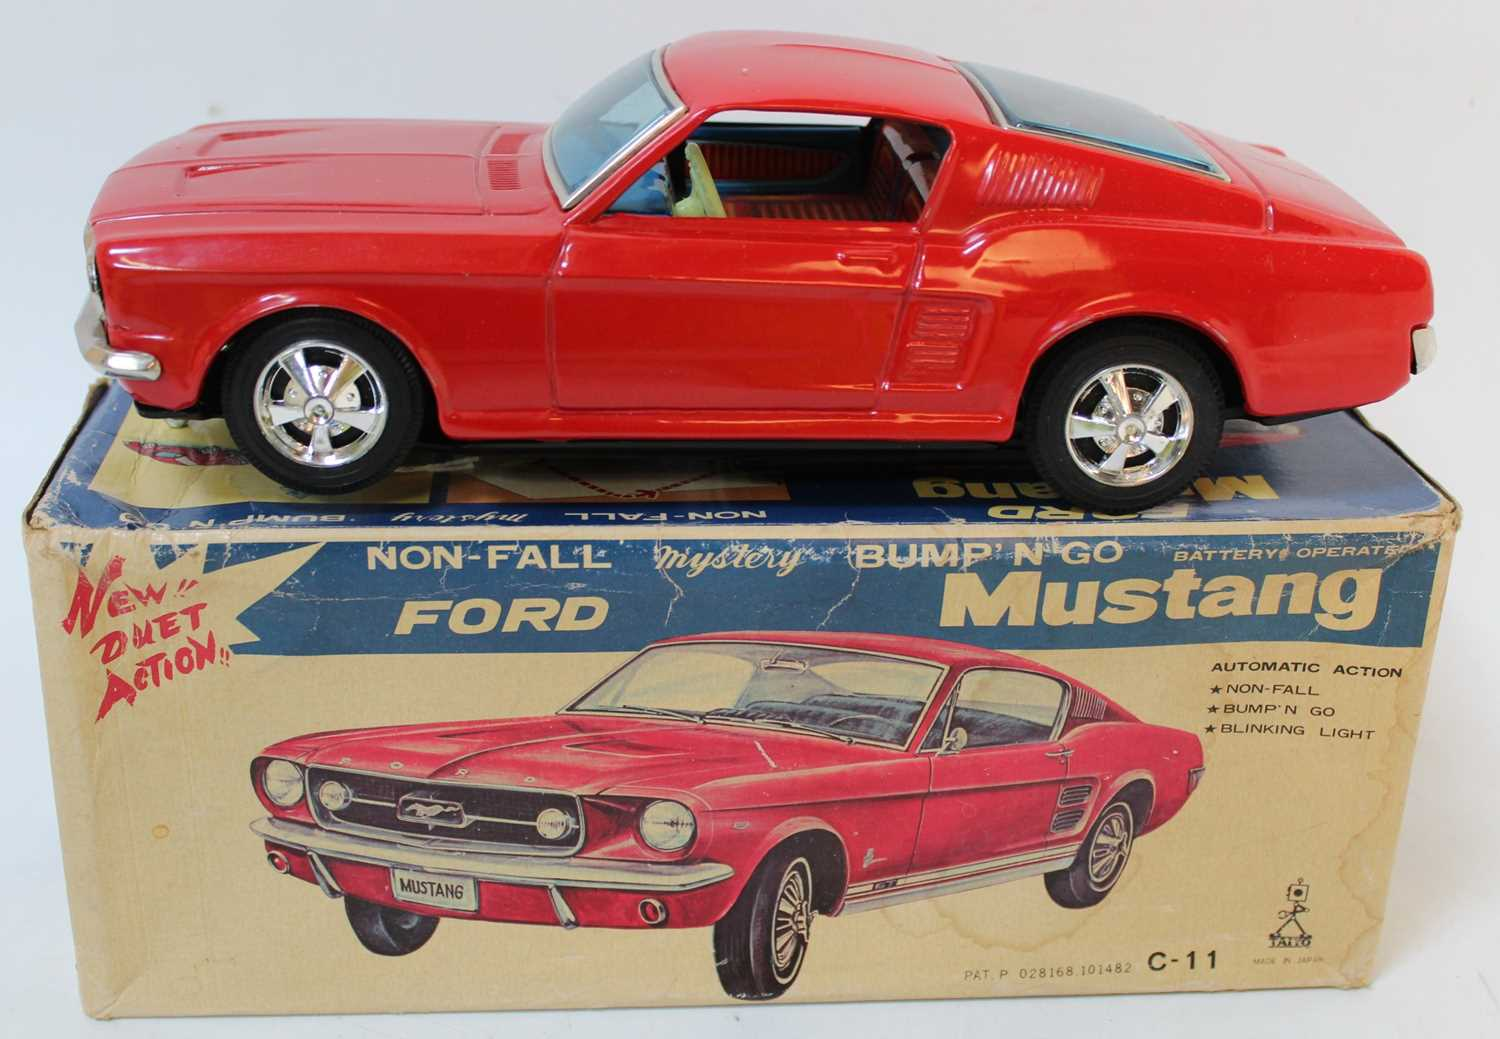 Taiyo Tinplate battery powered Ford Mustang (red) tiny rub mark to roof, very near mint in box. (